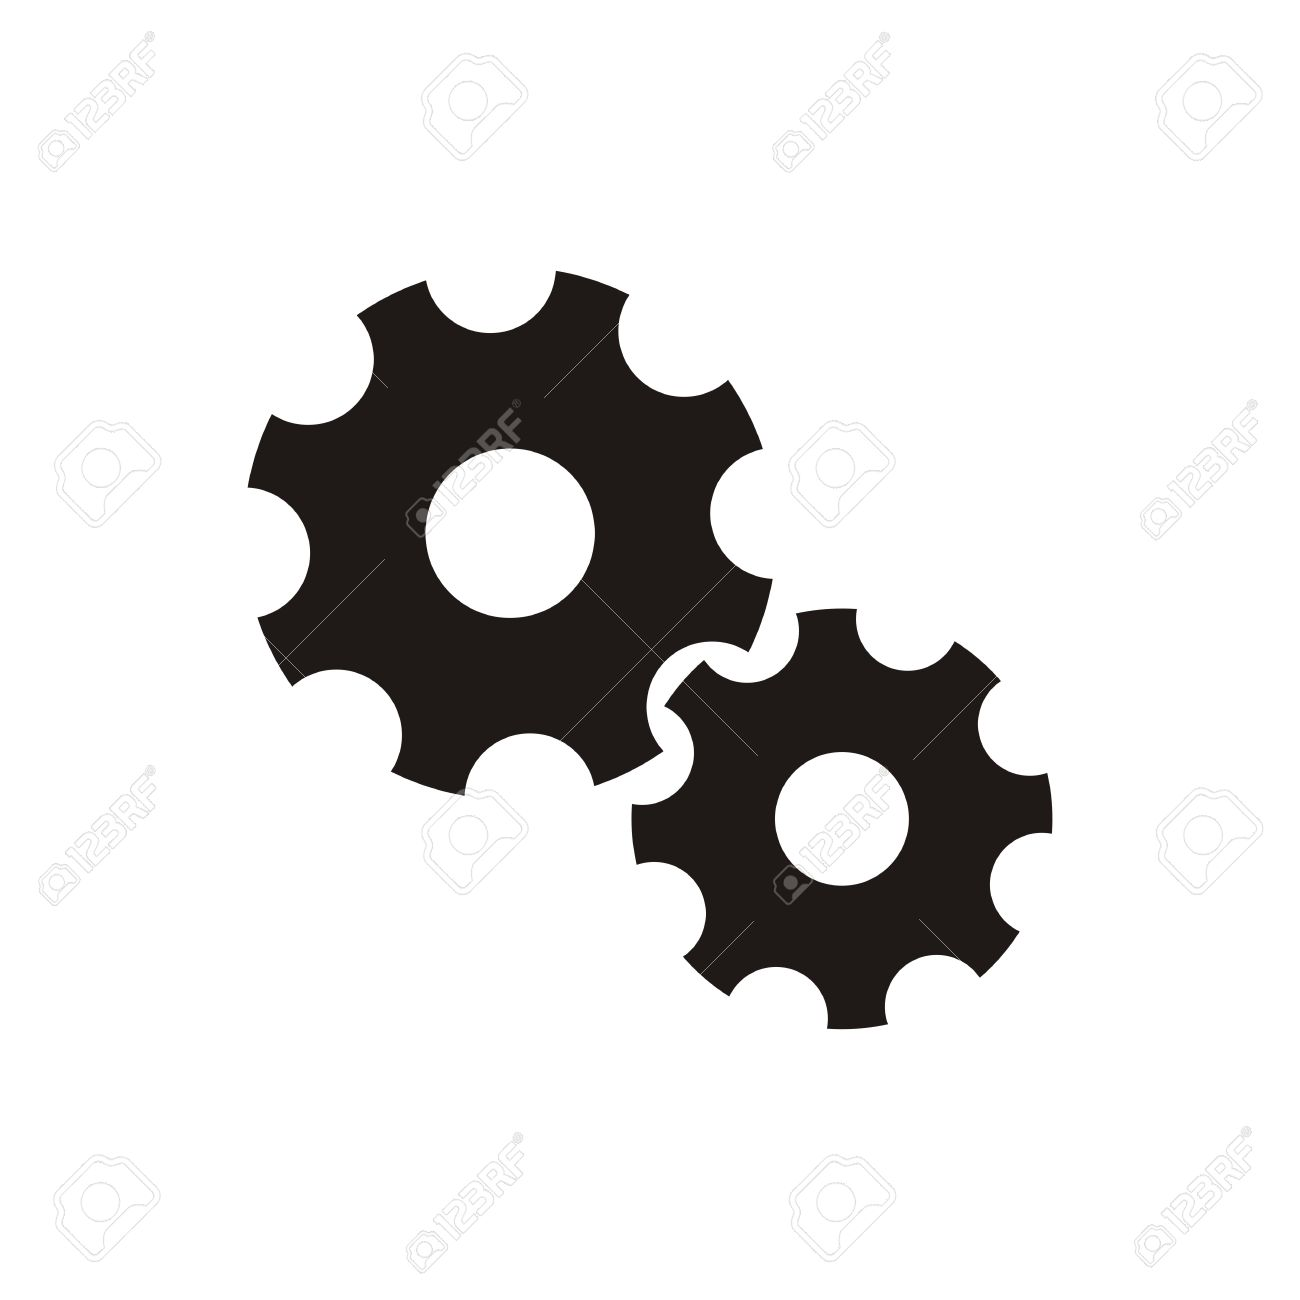 simple black gear wheels icon isolated royalty free cliparts rh 123rf com gear icon vector free